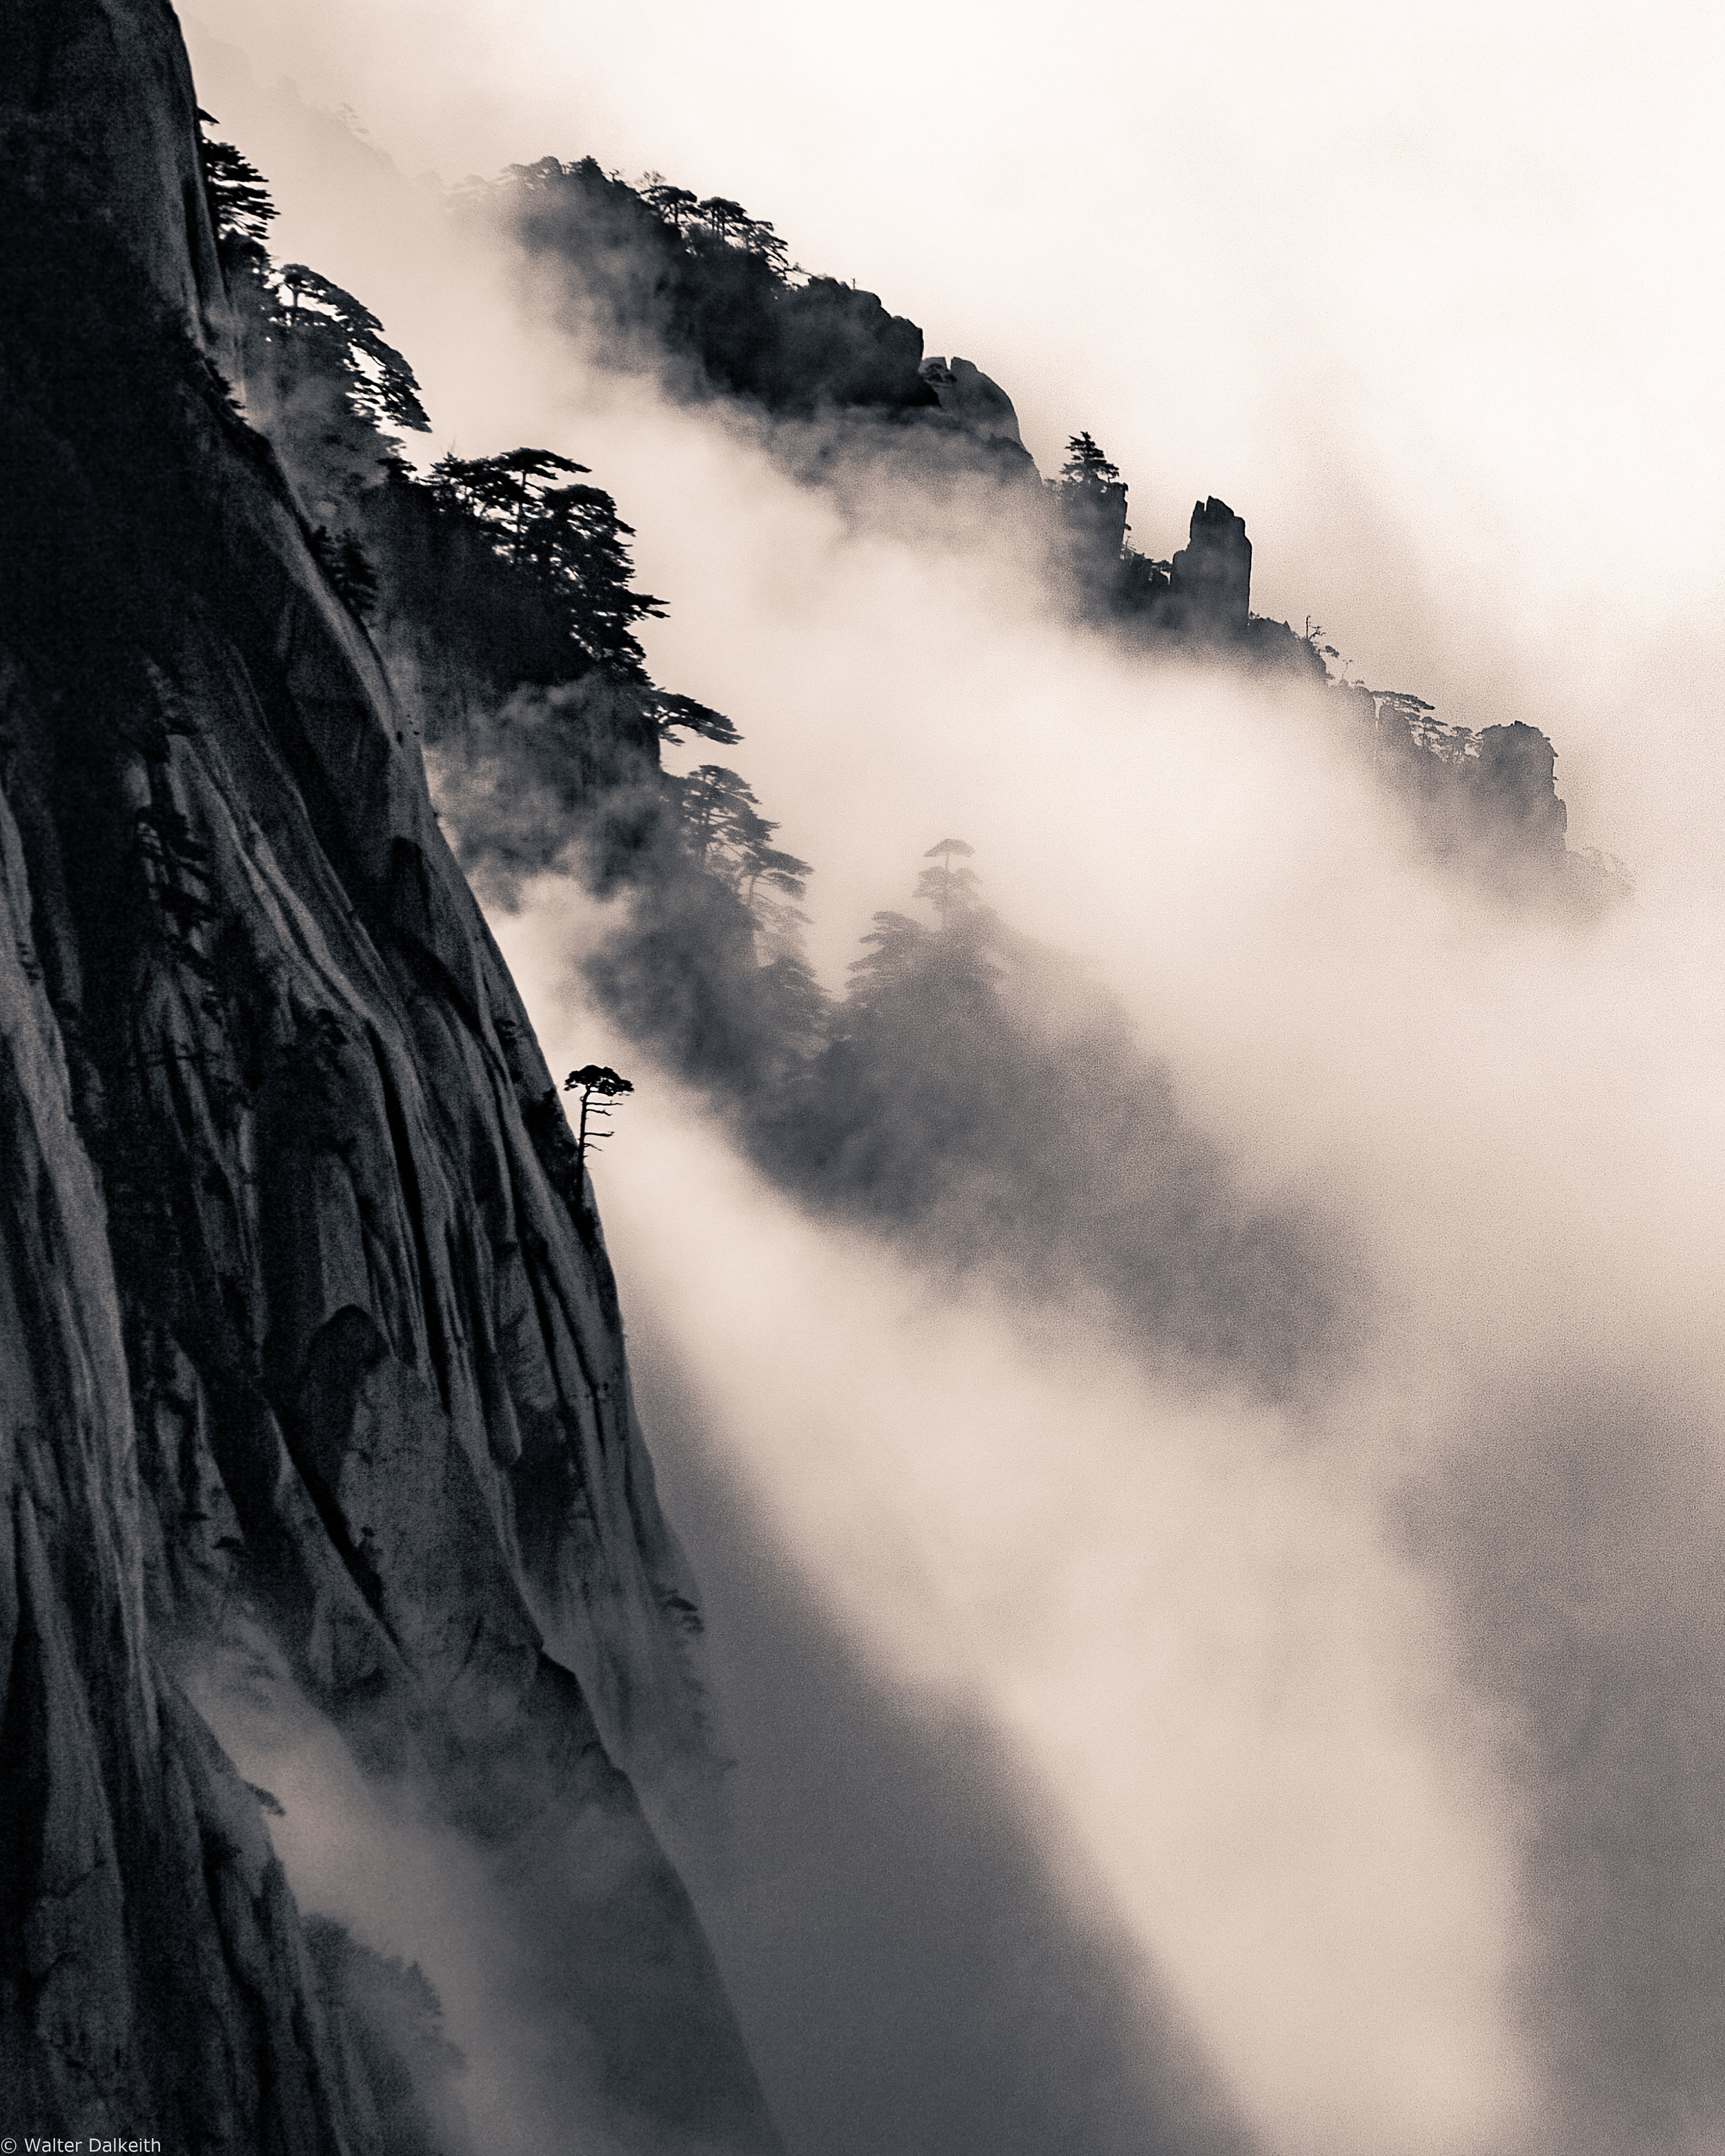 TIME MARCHES ON - IMAGES OF HUANGSHAN